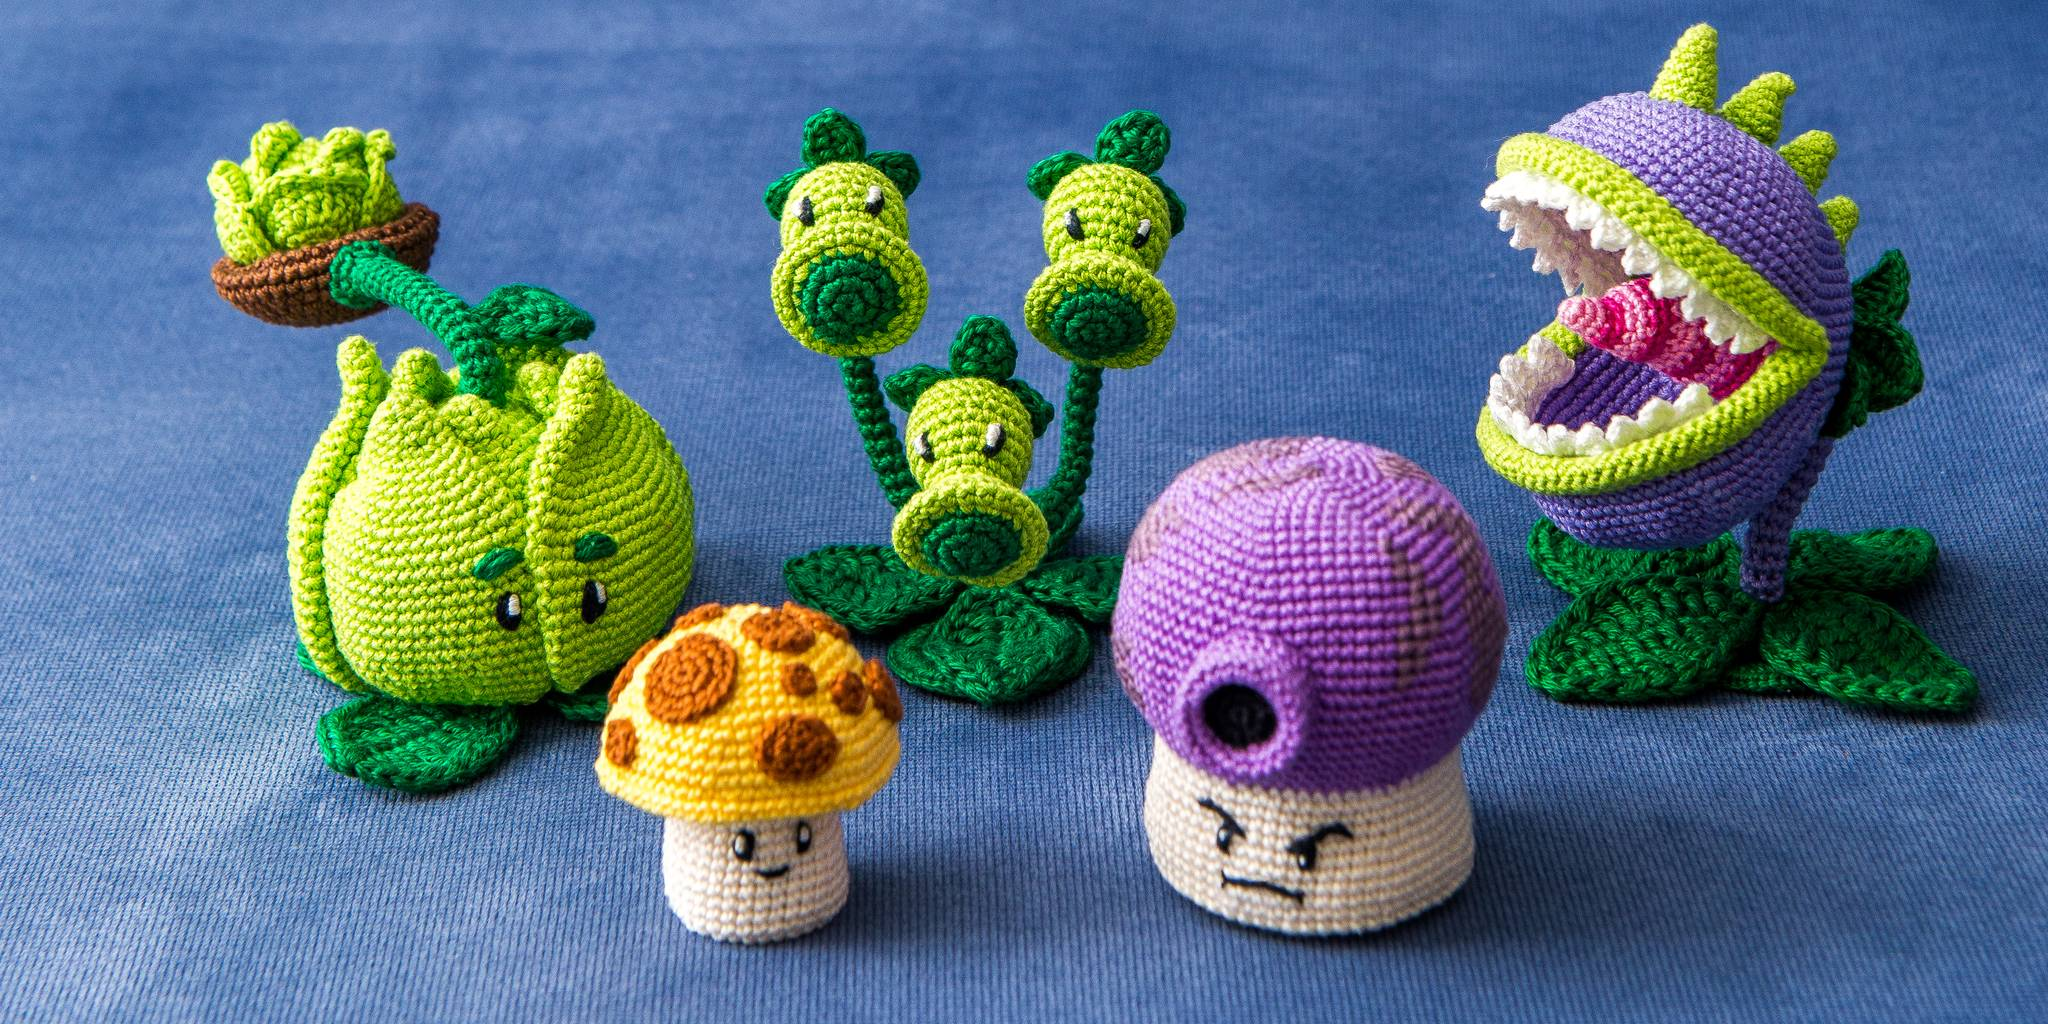 These adorable amigurumi are the world's cutest craft project